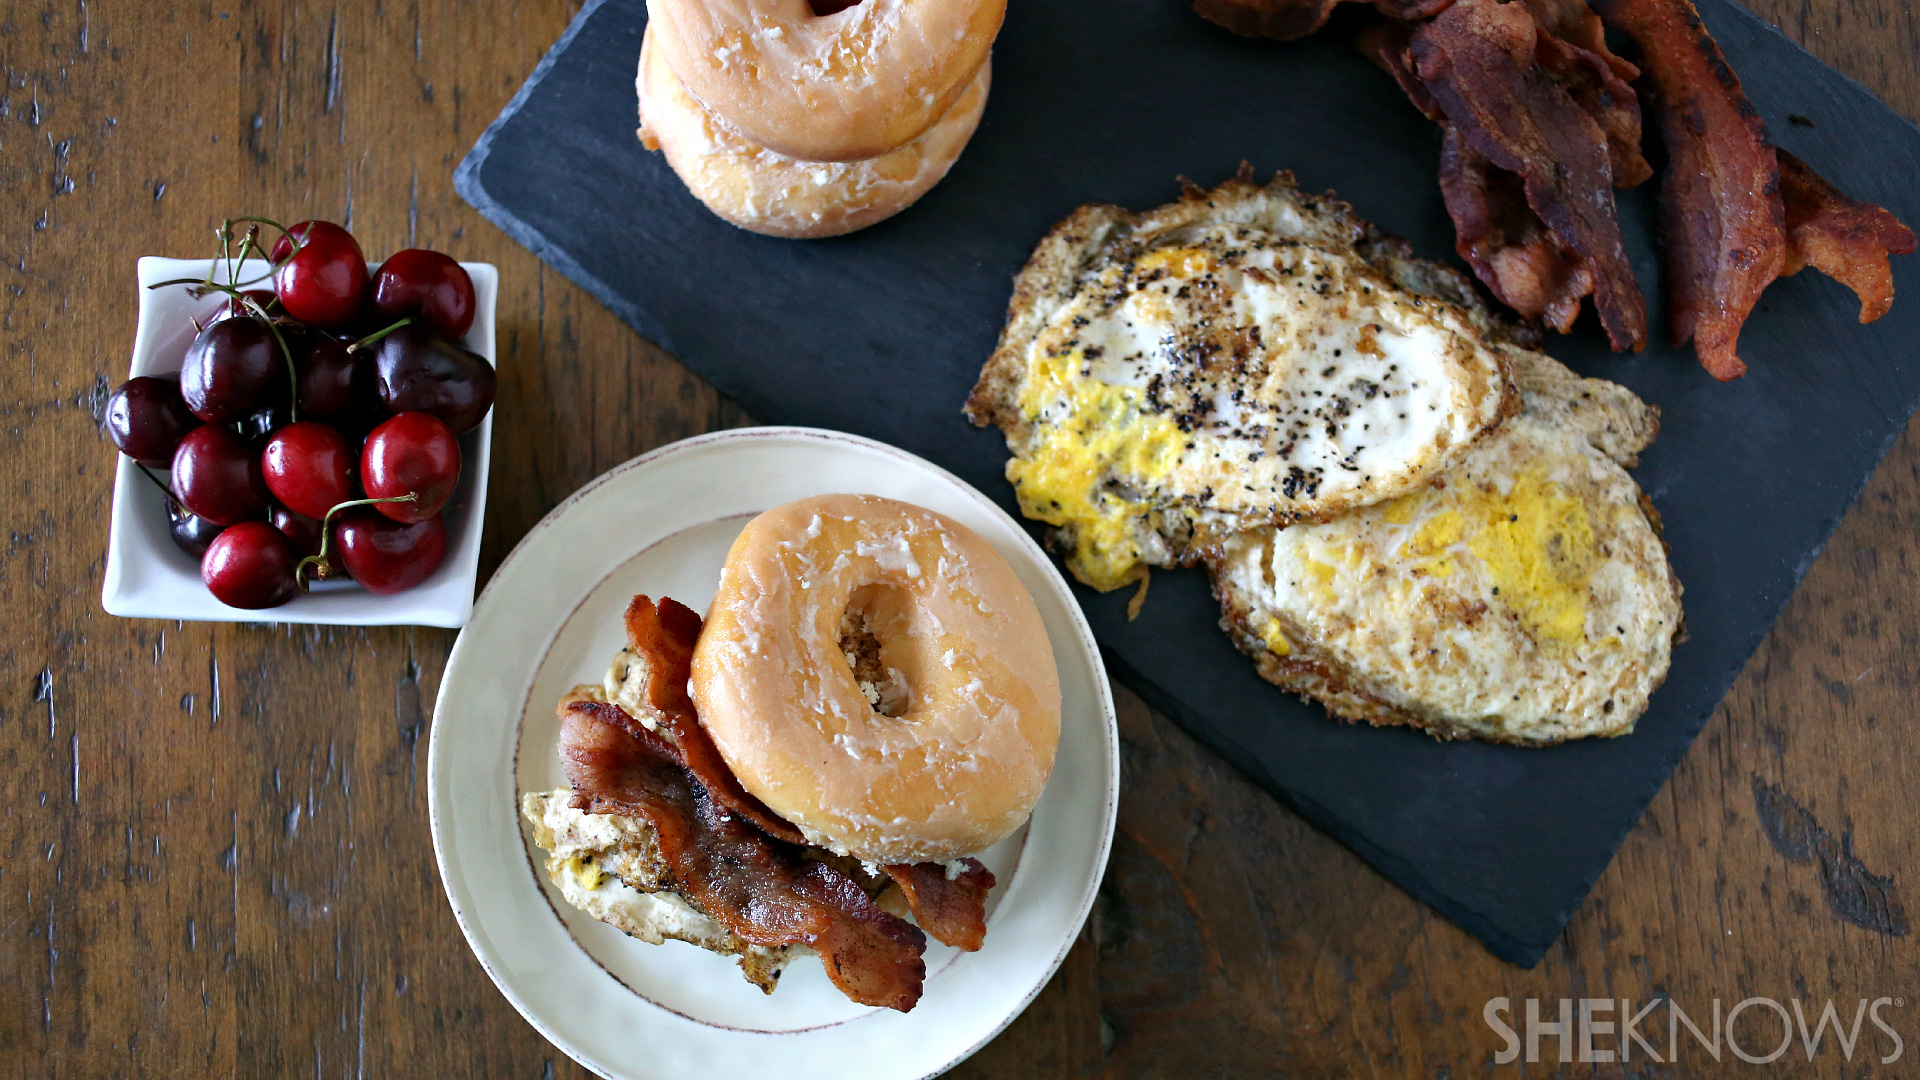 Doughnuts are good mixed with just about anything... except maybe fish